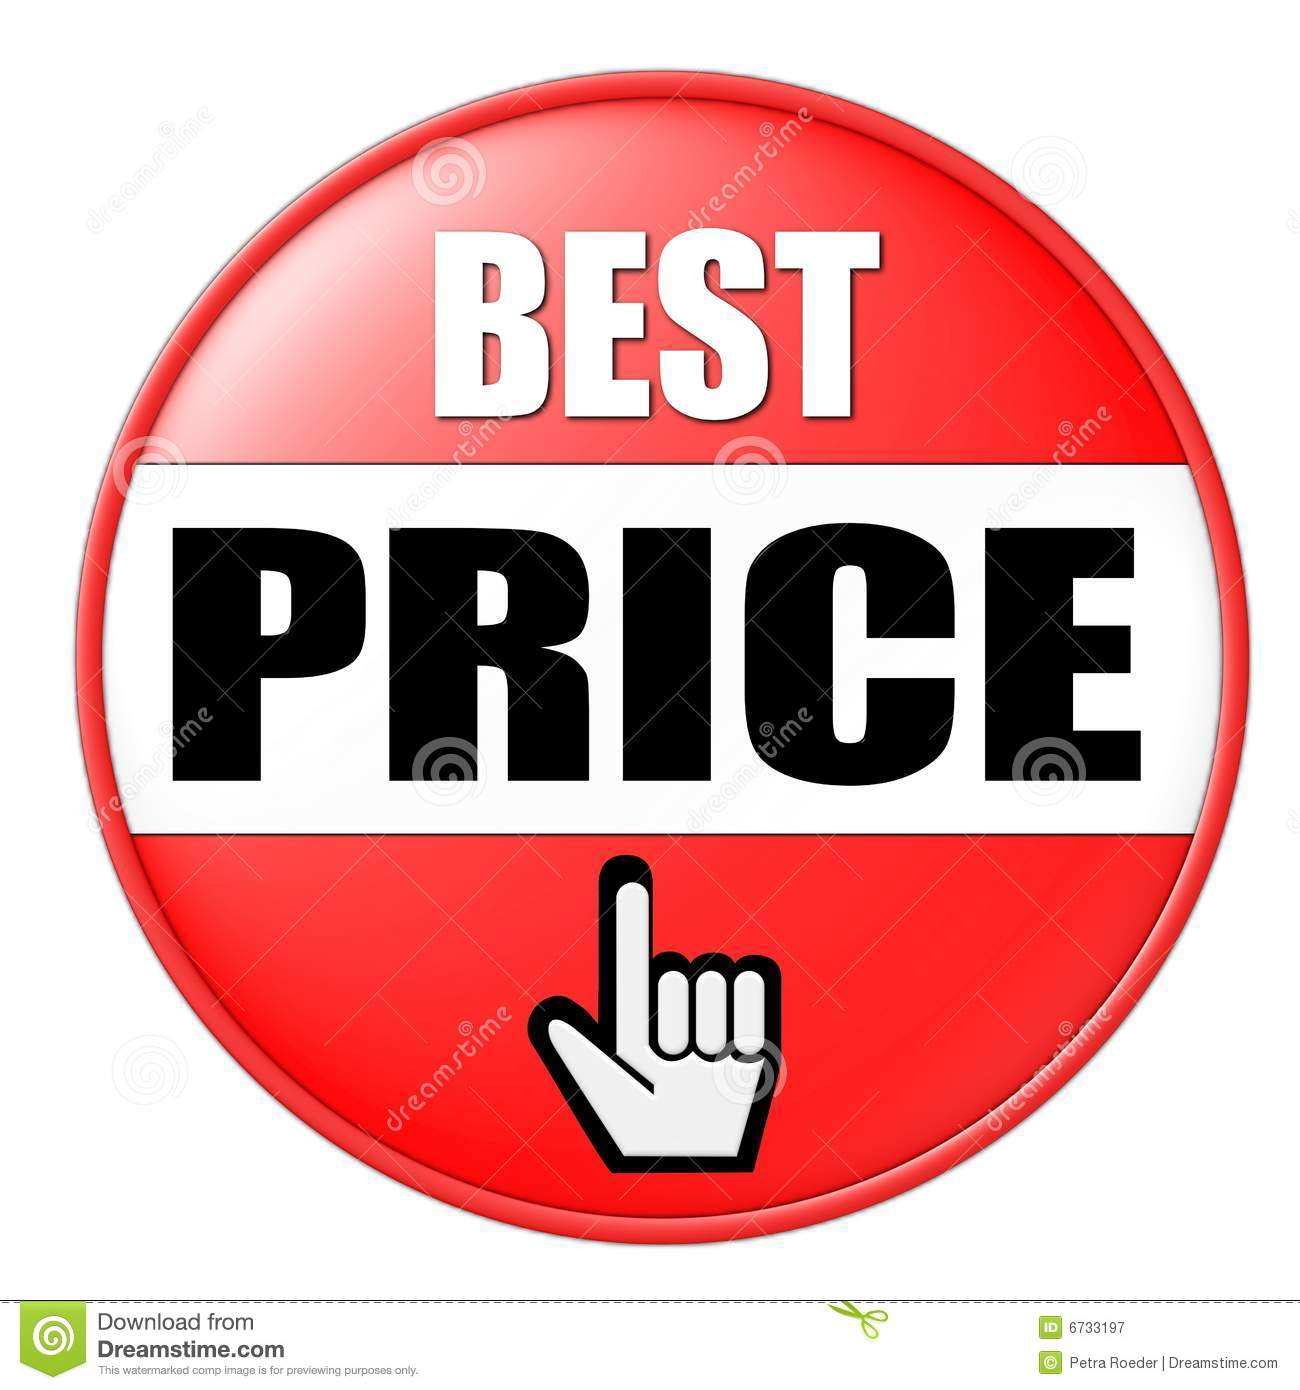 Best Price Button Royalty Free Stock Photography  Image 6733197